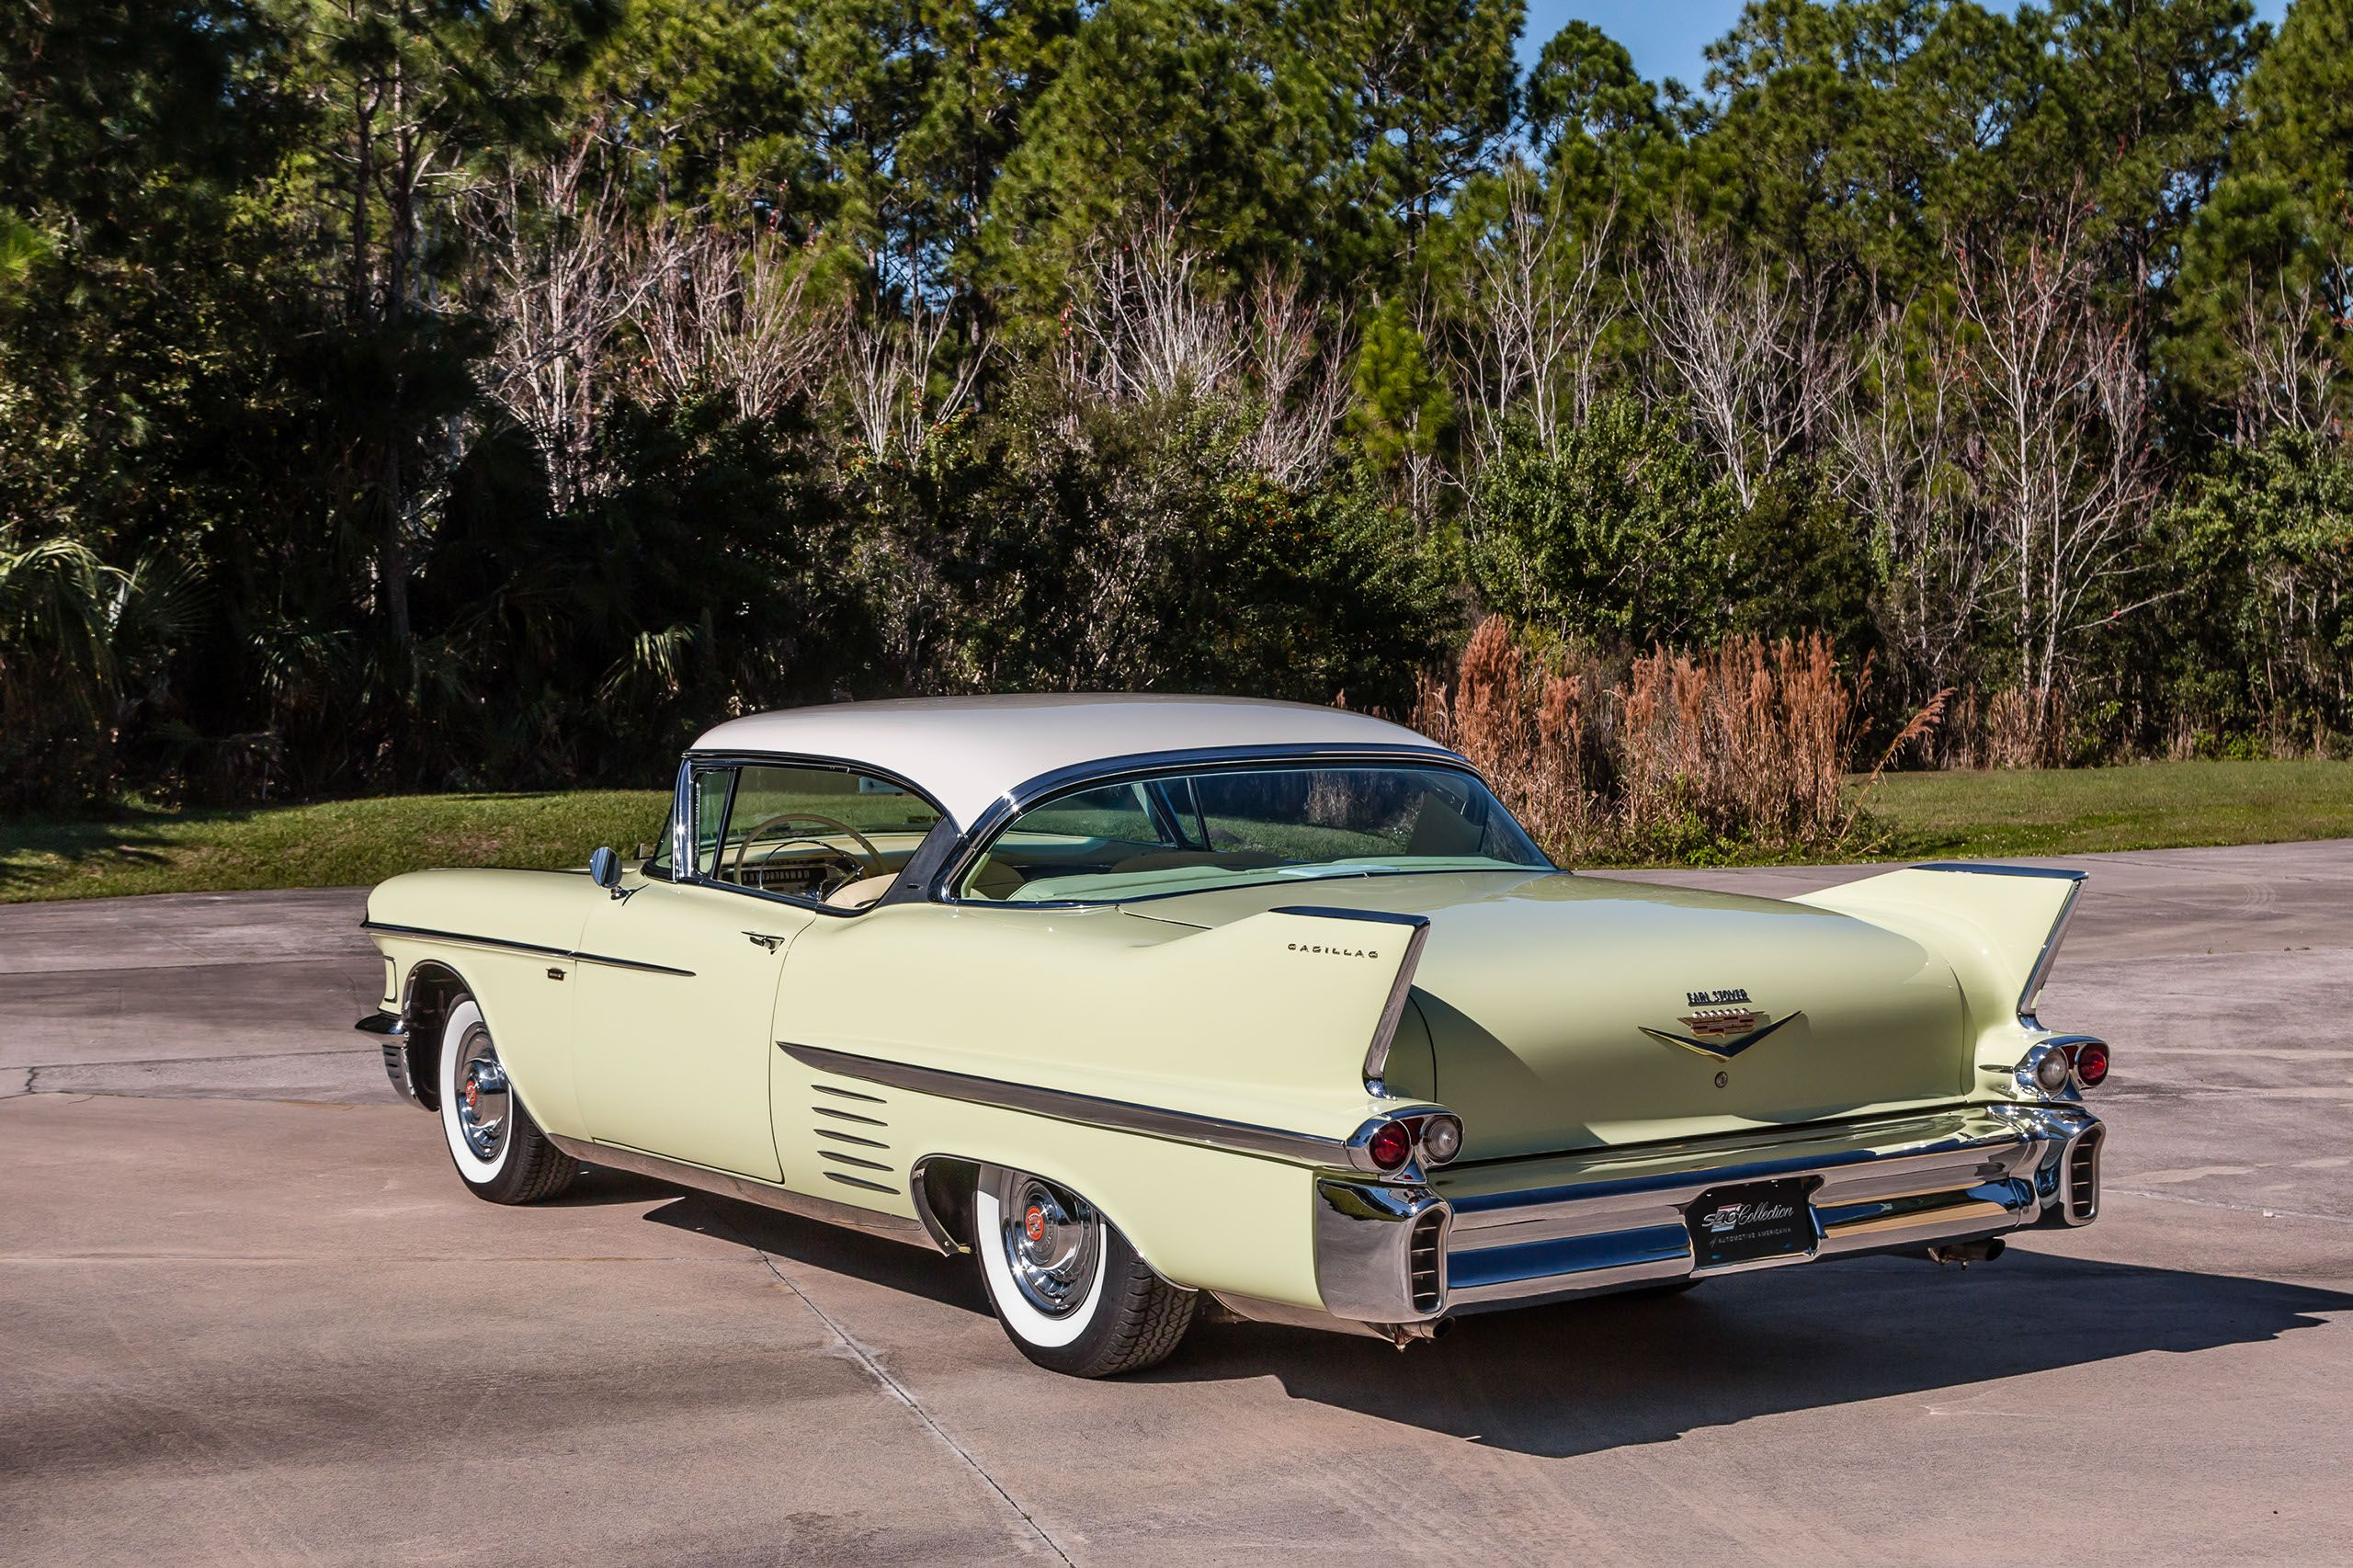 58 cadillac coupe deville